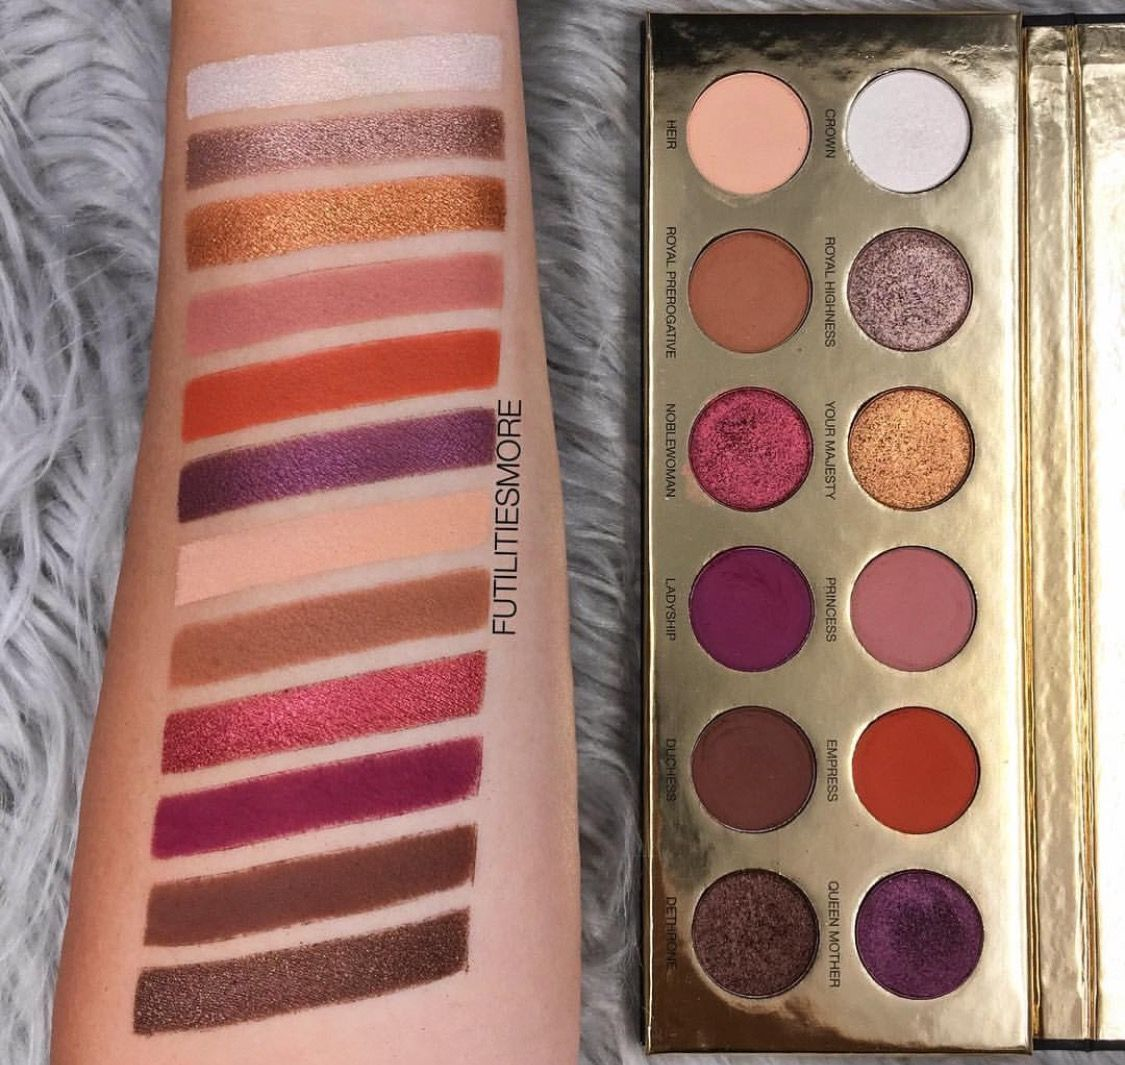 Queen Of Hearts Eyeshadow Palette by Coloured Raine #17